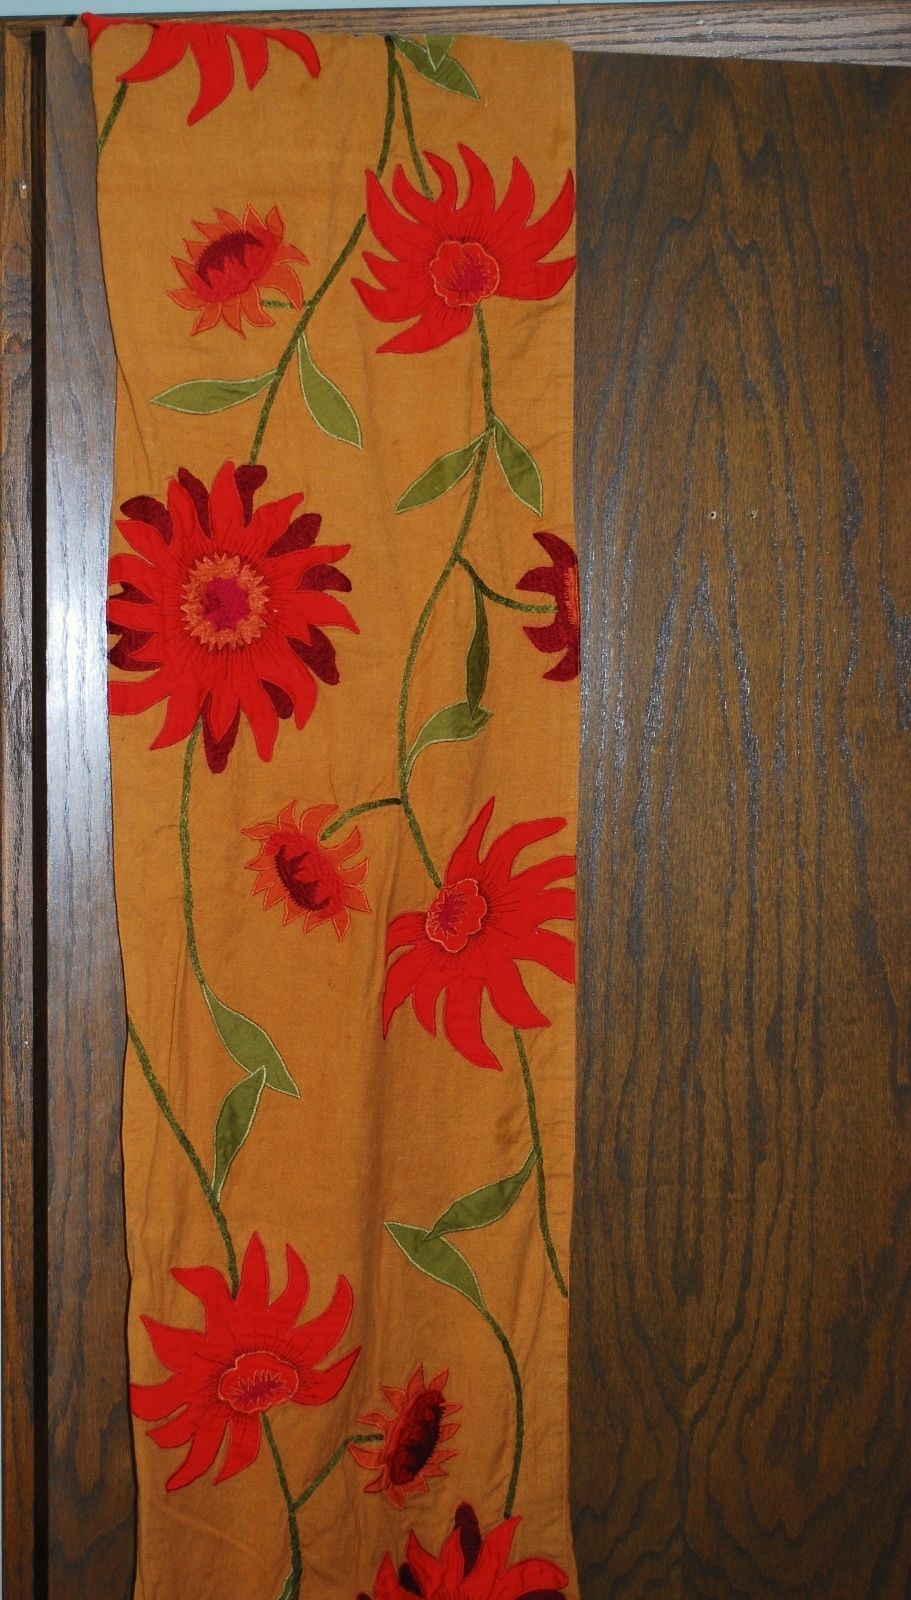 Crate Barrel Table Runner 90 X 14 And 24 Similar Items